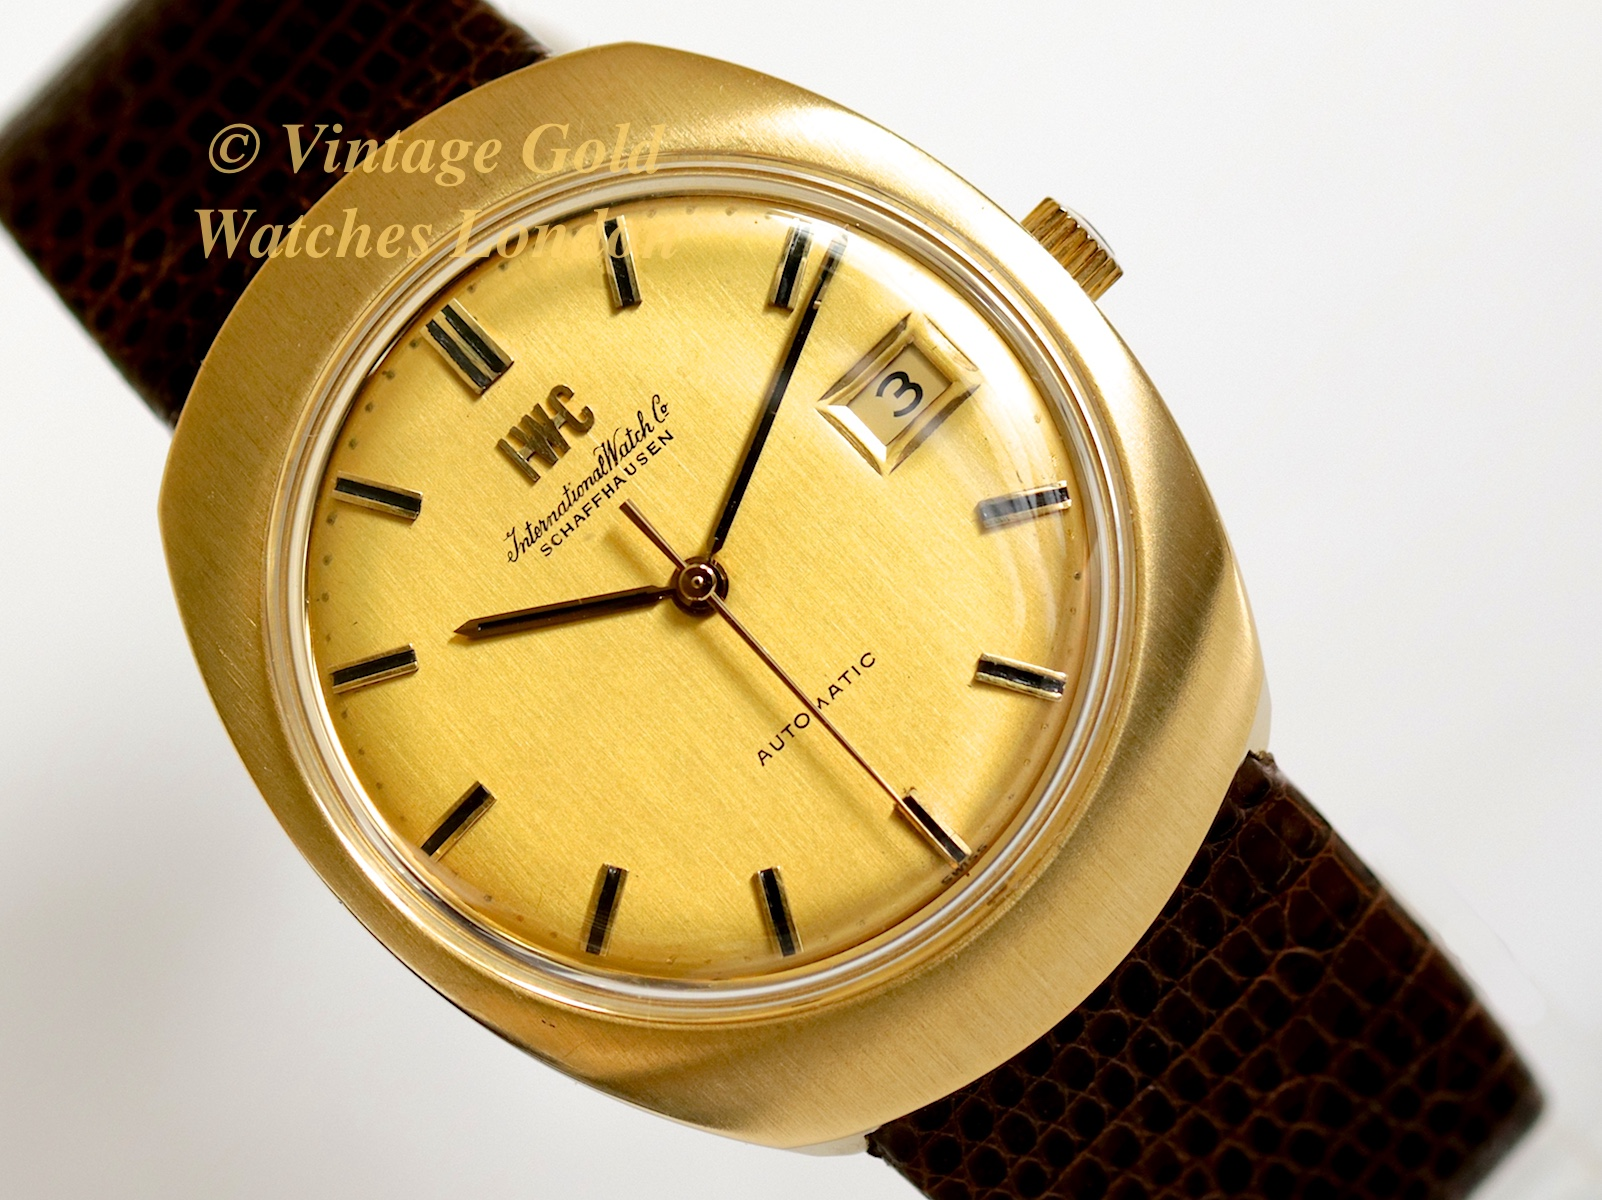 iwc automatic 18k 1973 vintage gold watches